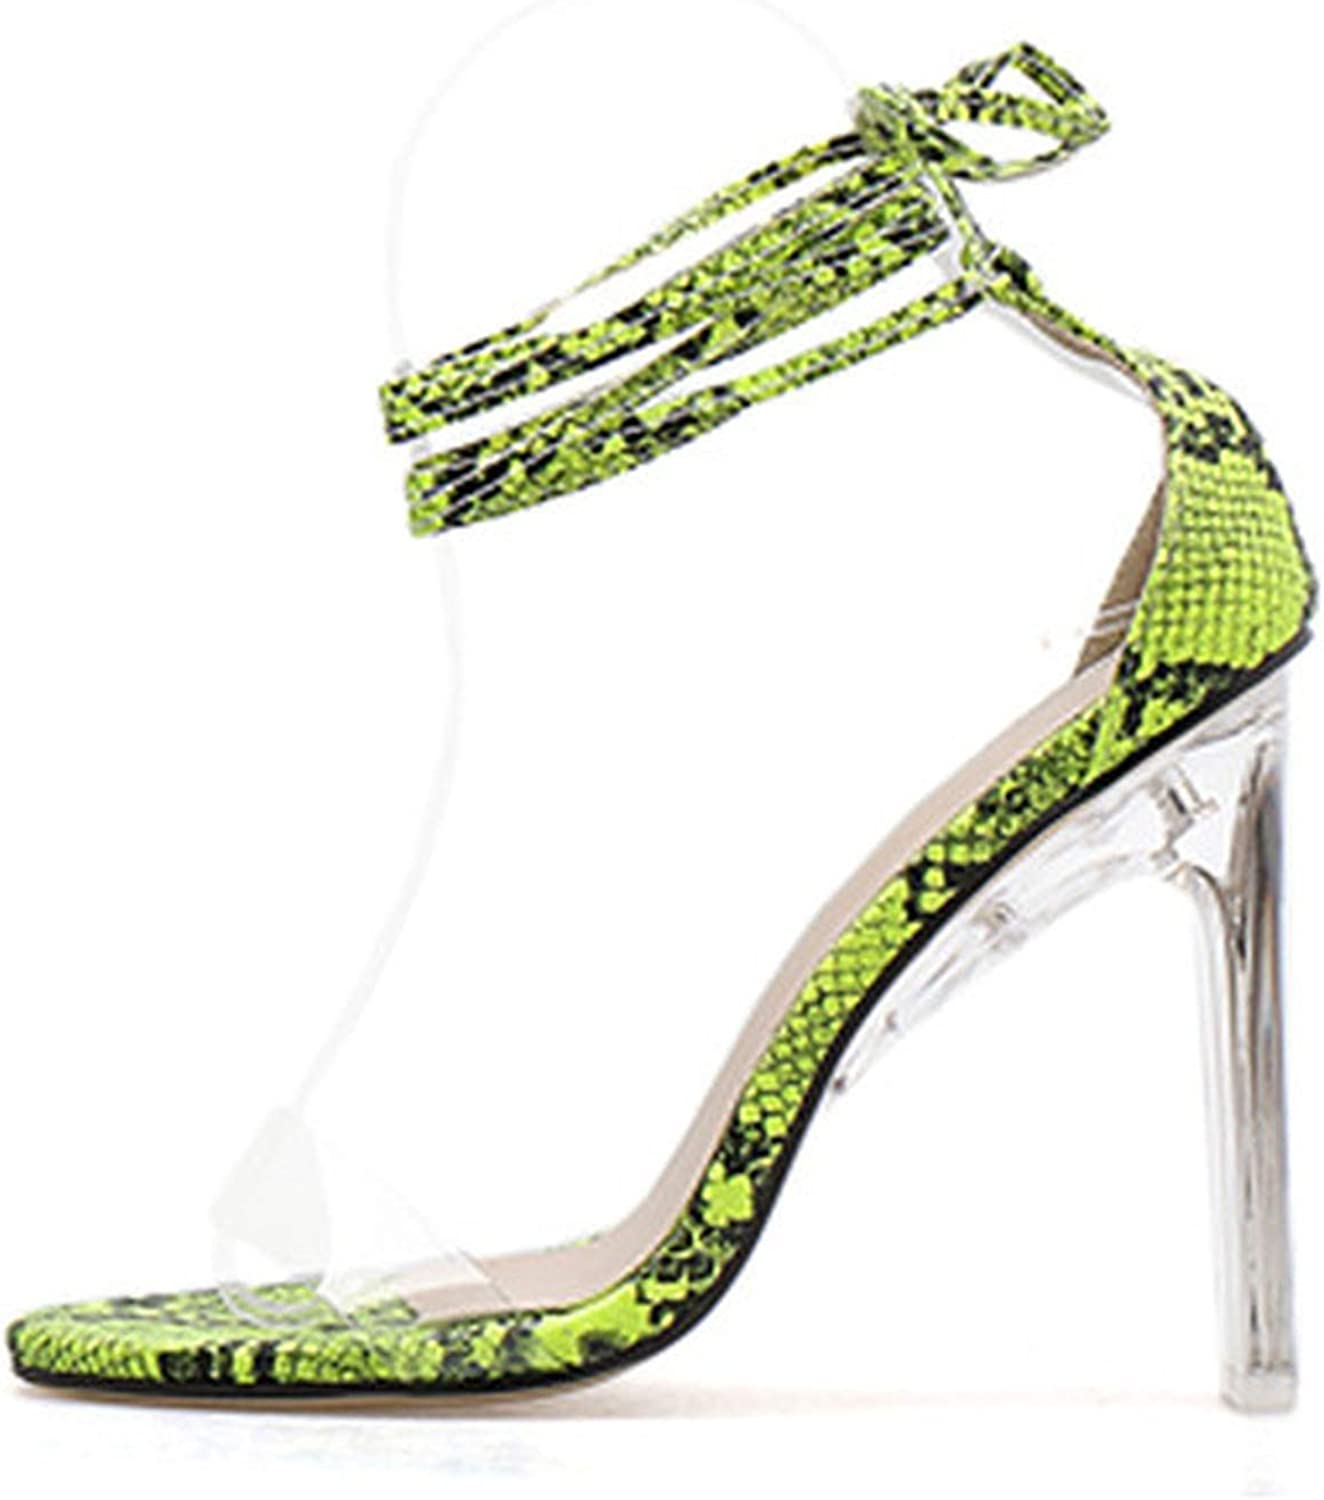 HuangKang Ankle Lace Up Women Sandals Transparent Square Heels Green Serpentine Ladies Summer Party Wedding shoes